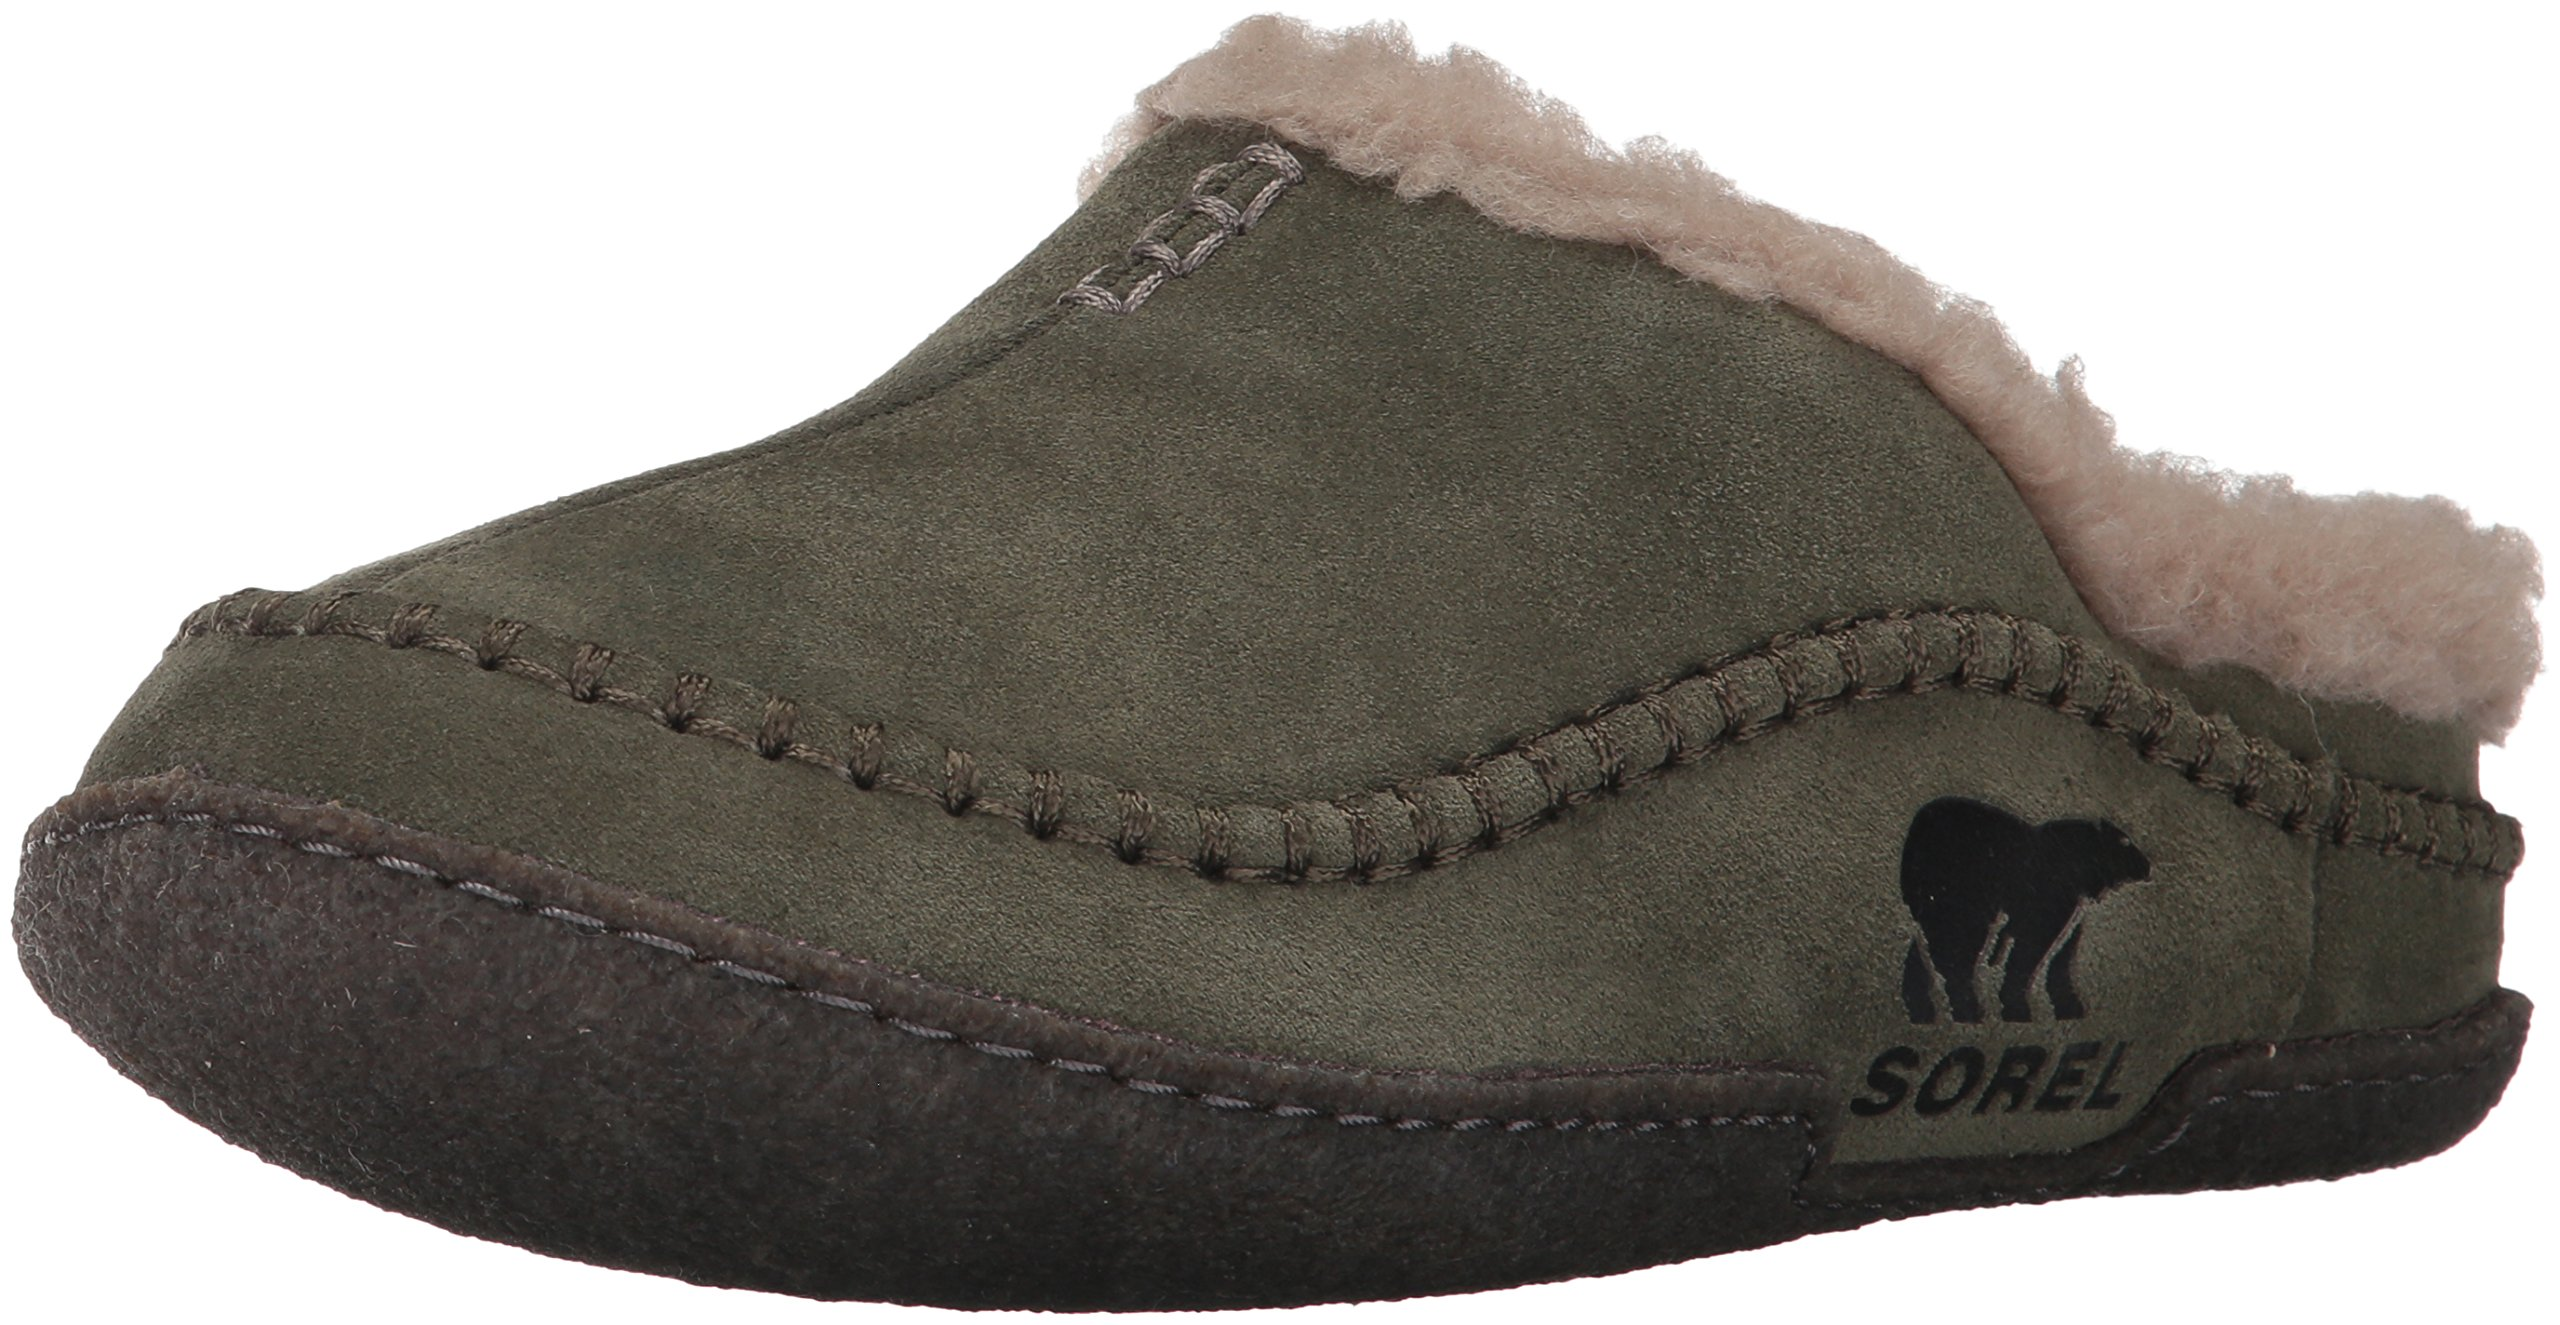 SOREL Men's Falcon Ridge Slipper,Nori/Mud,7 D US